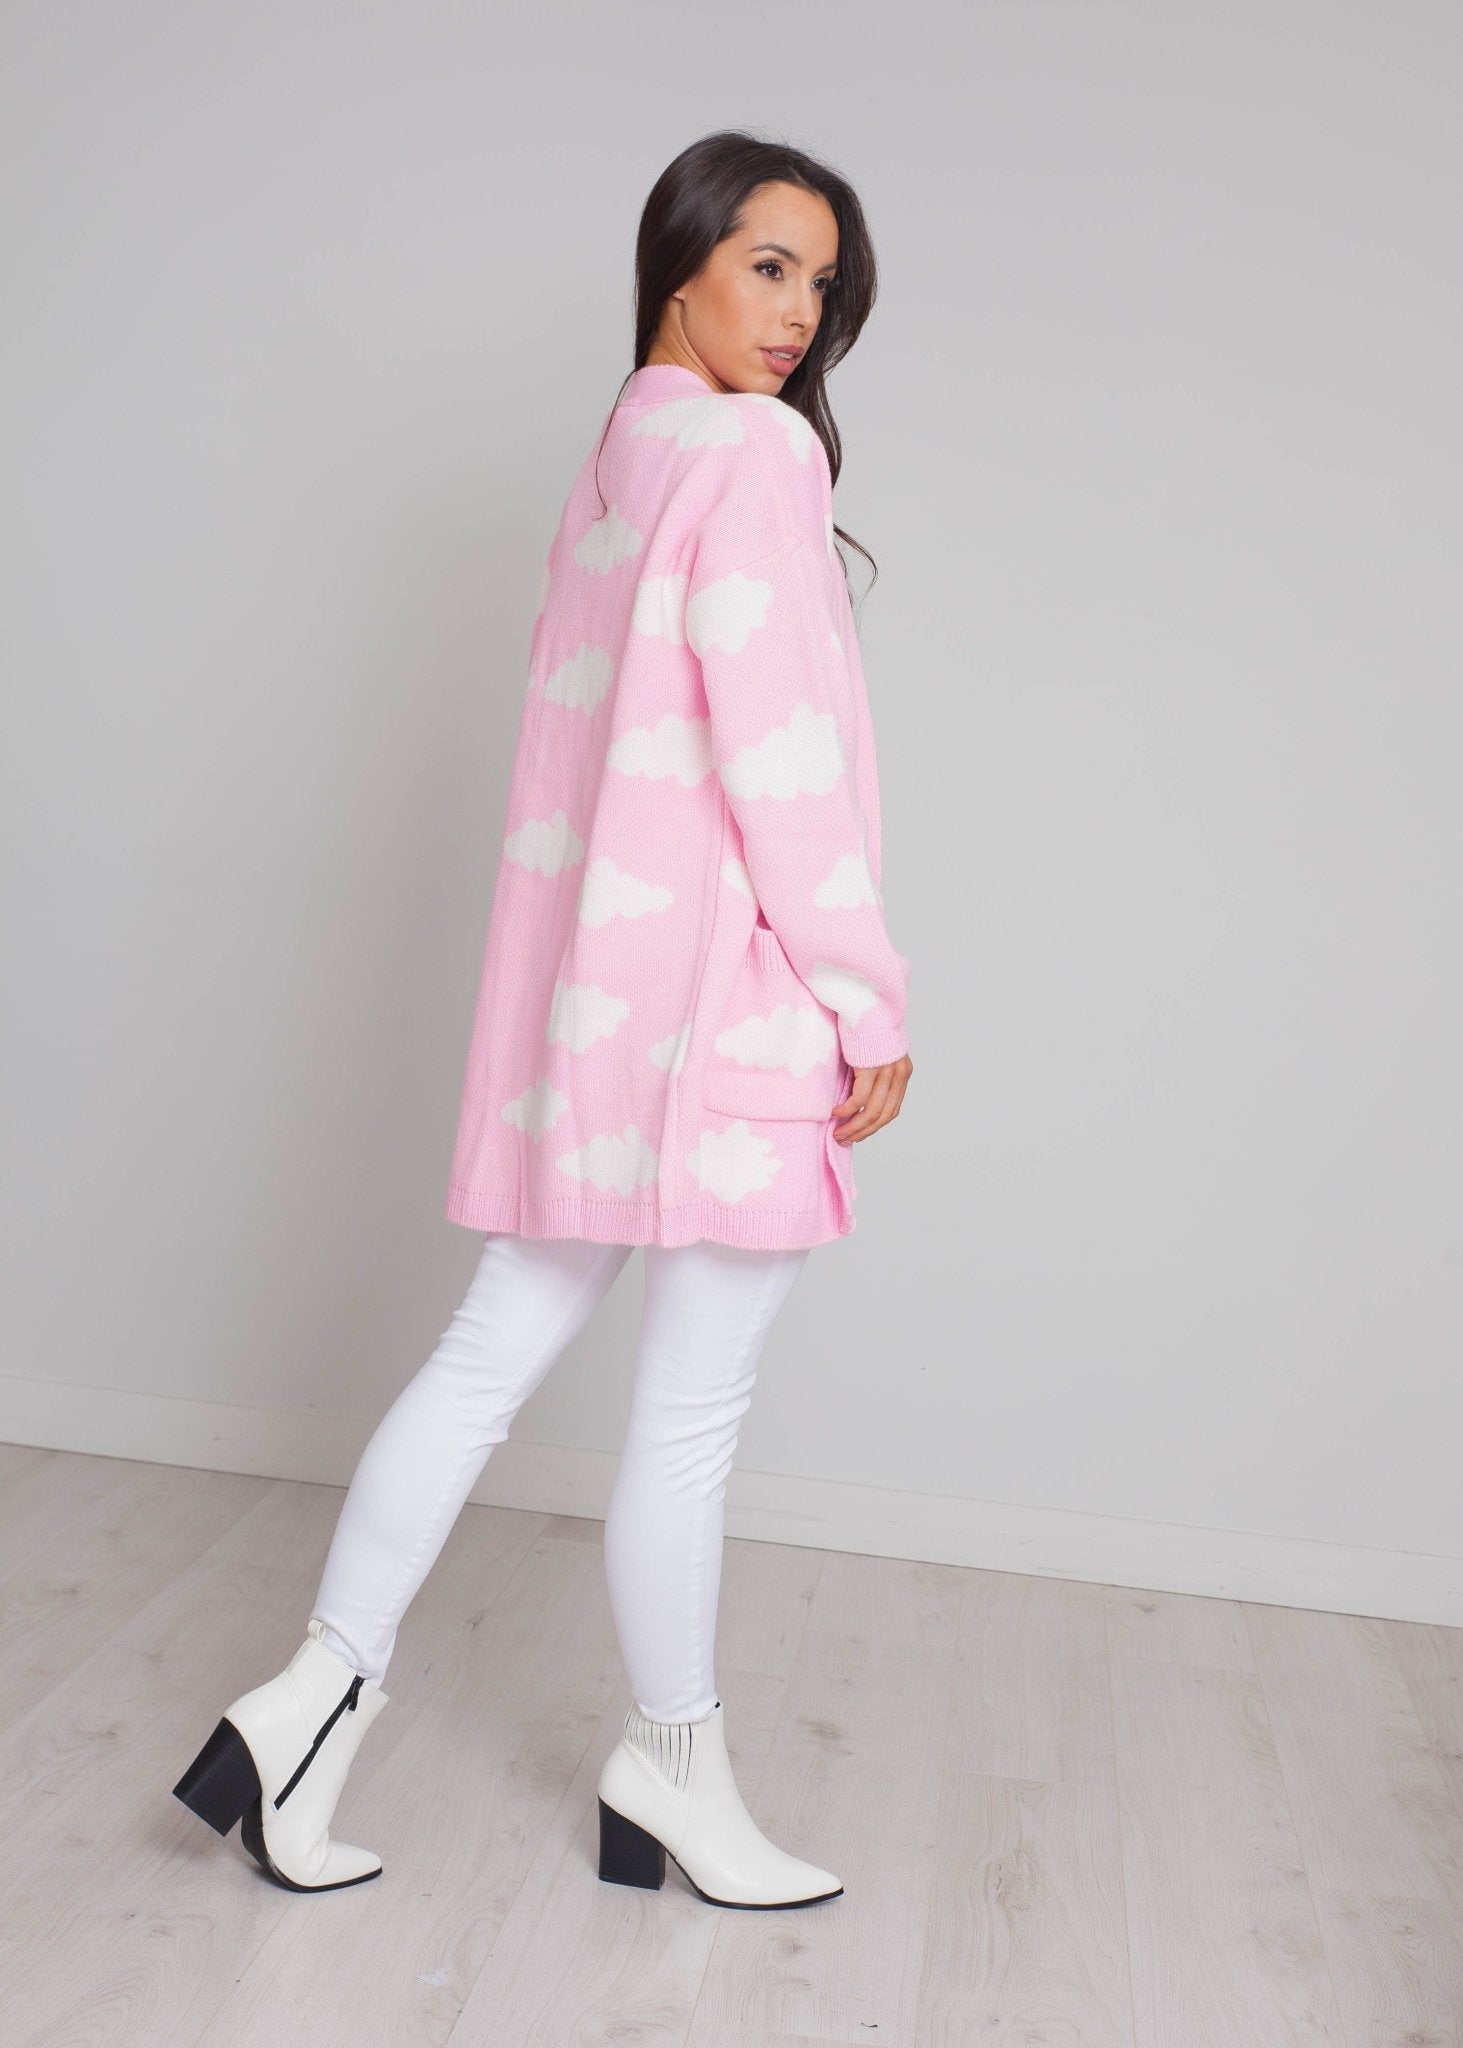 Priya Cloud Print Cardigan In Pink - The Walk in Wardrobe